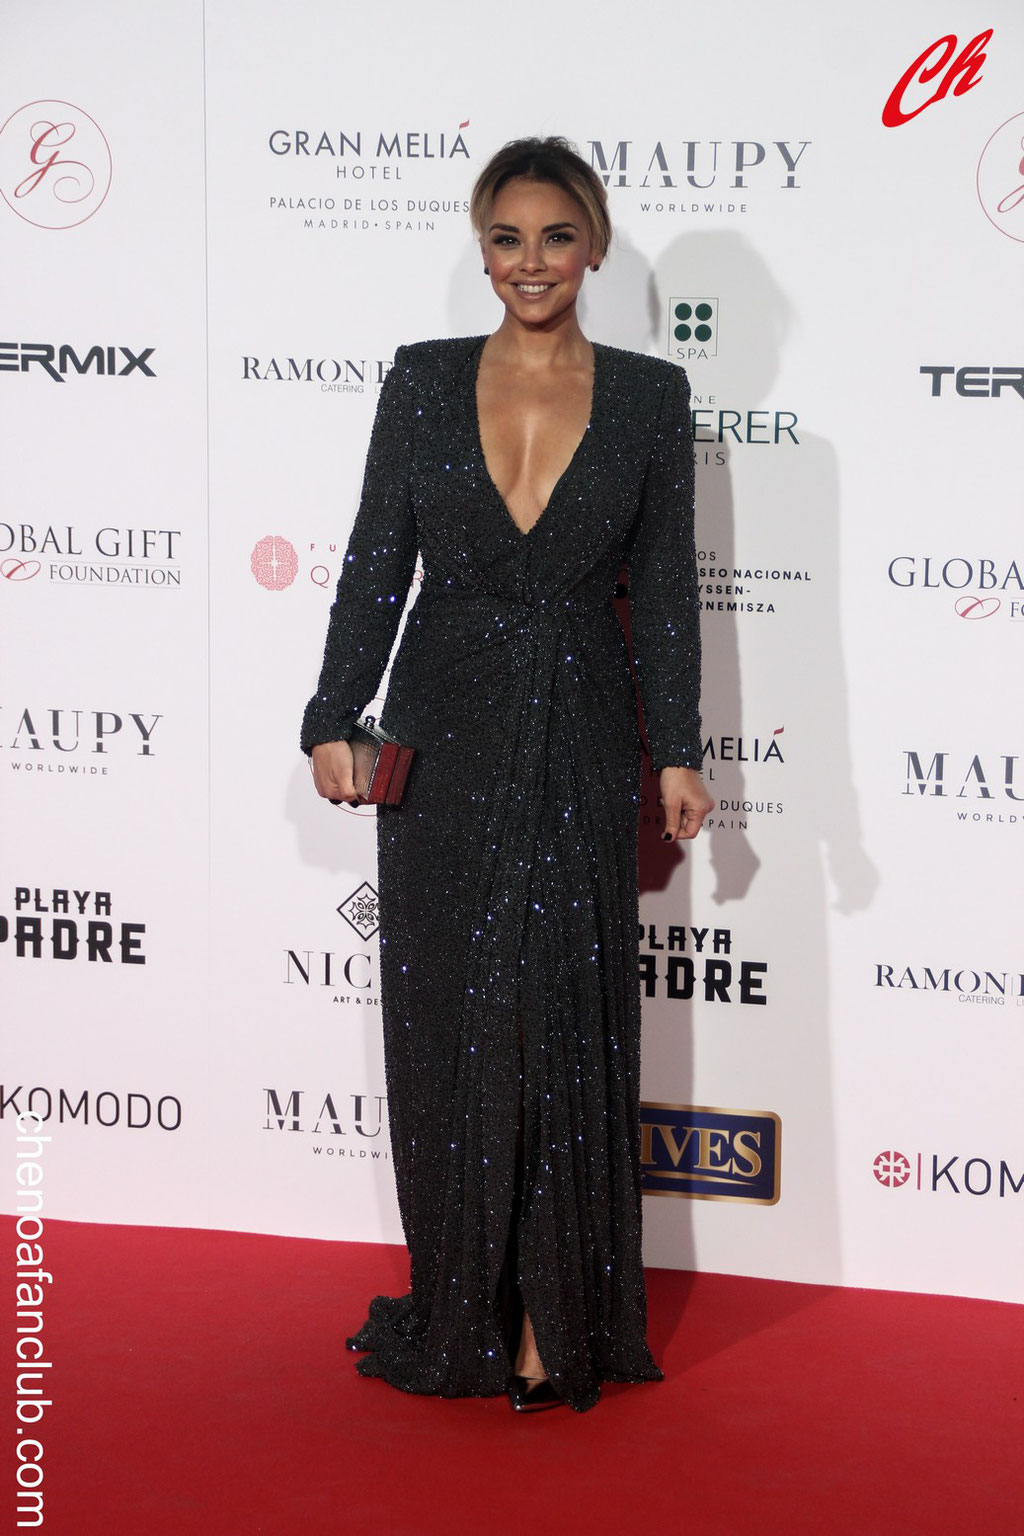 Gala Global Gift Madrid 22/03/2018 - Fotos Celia de la Vega